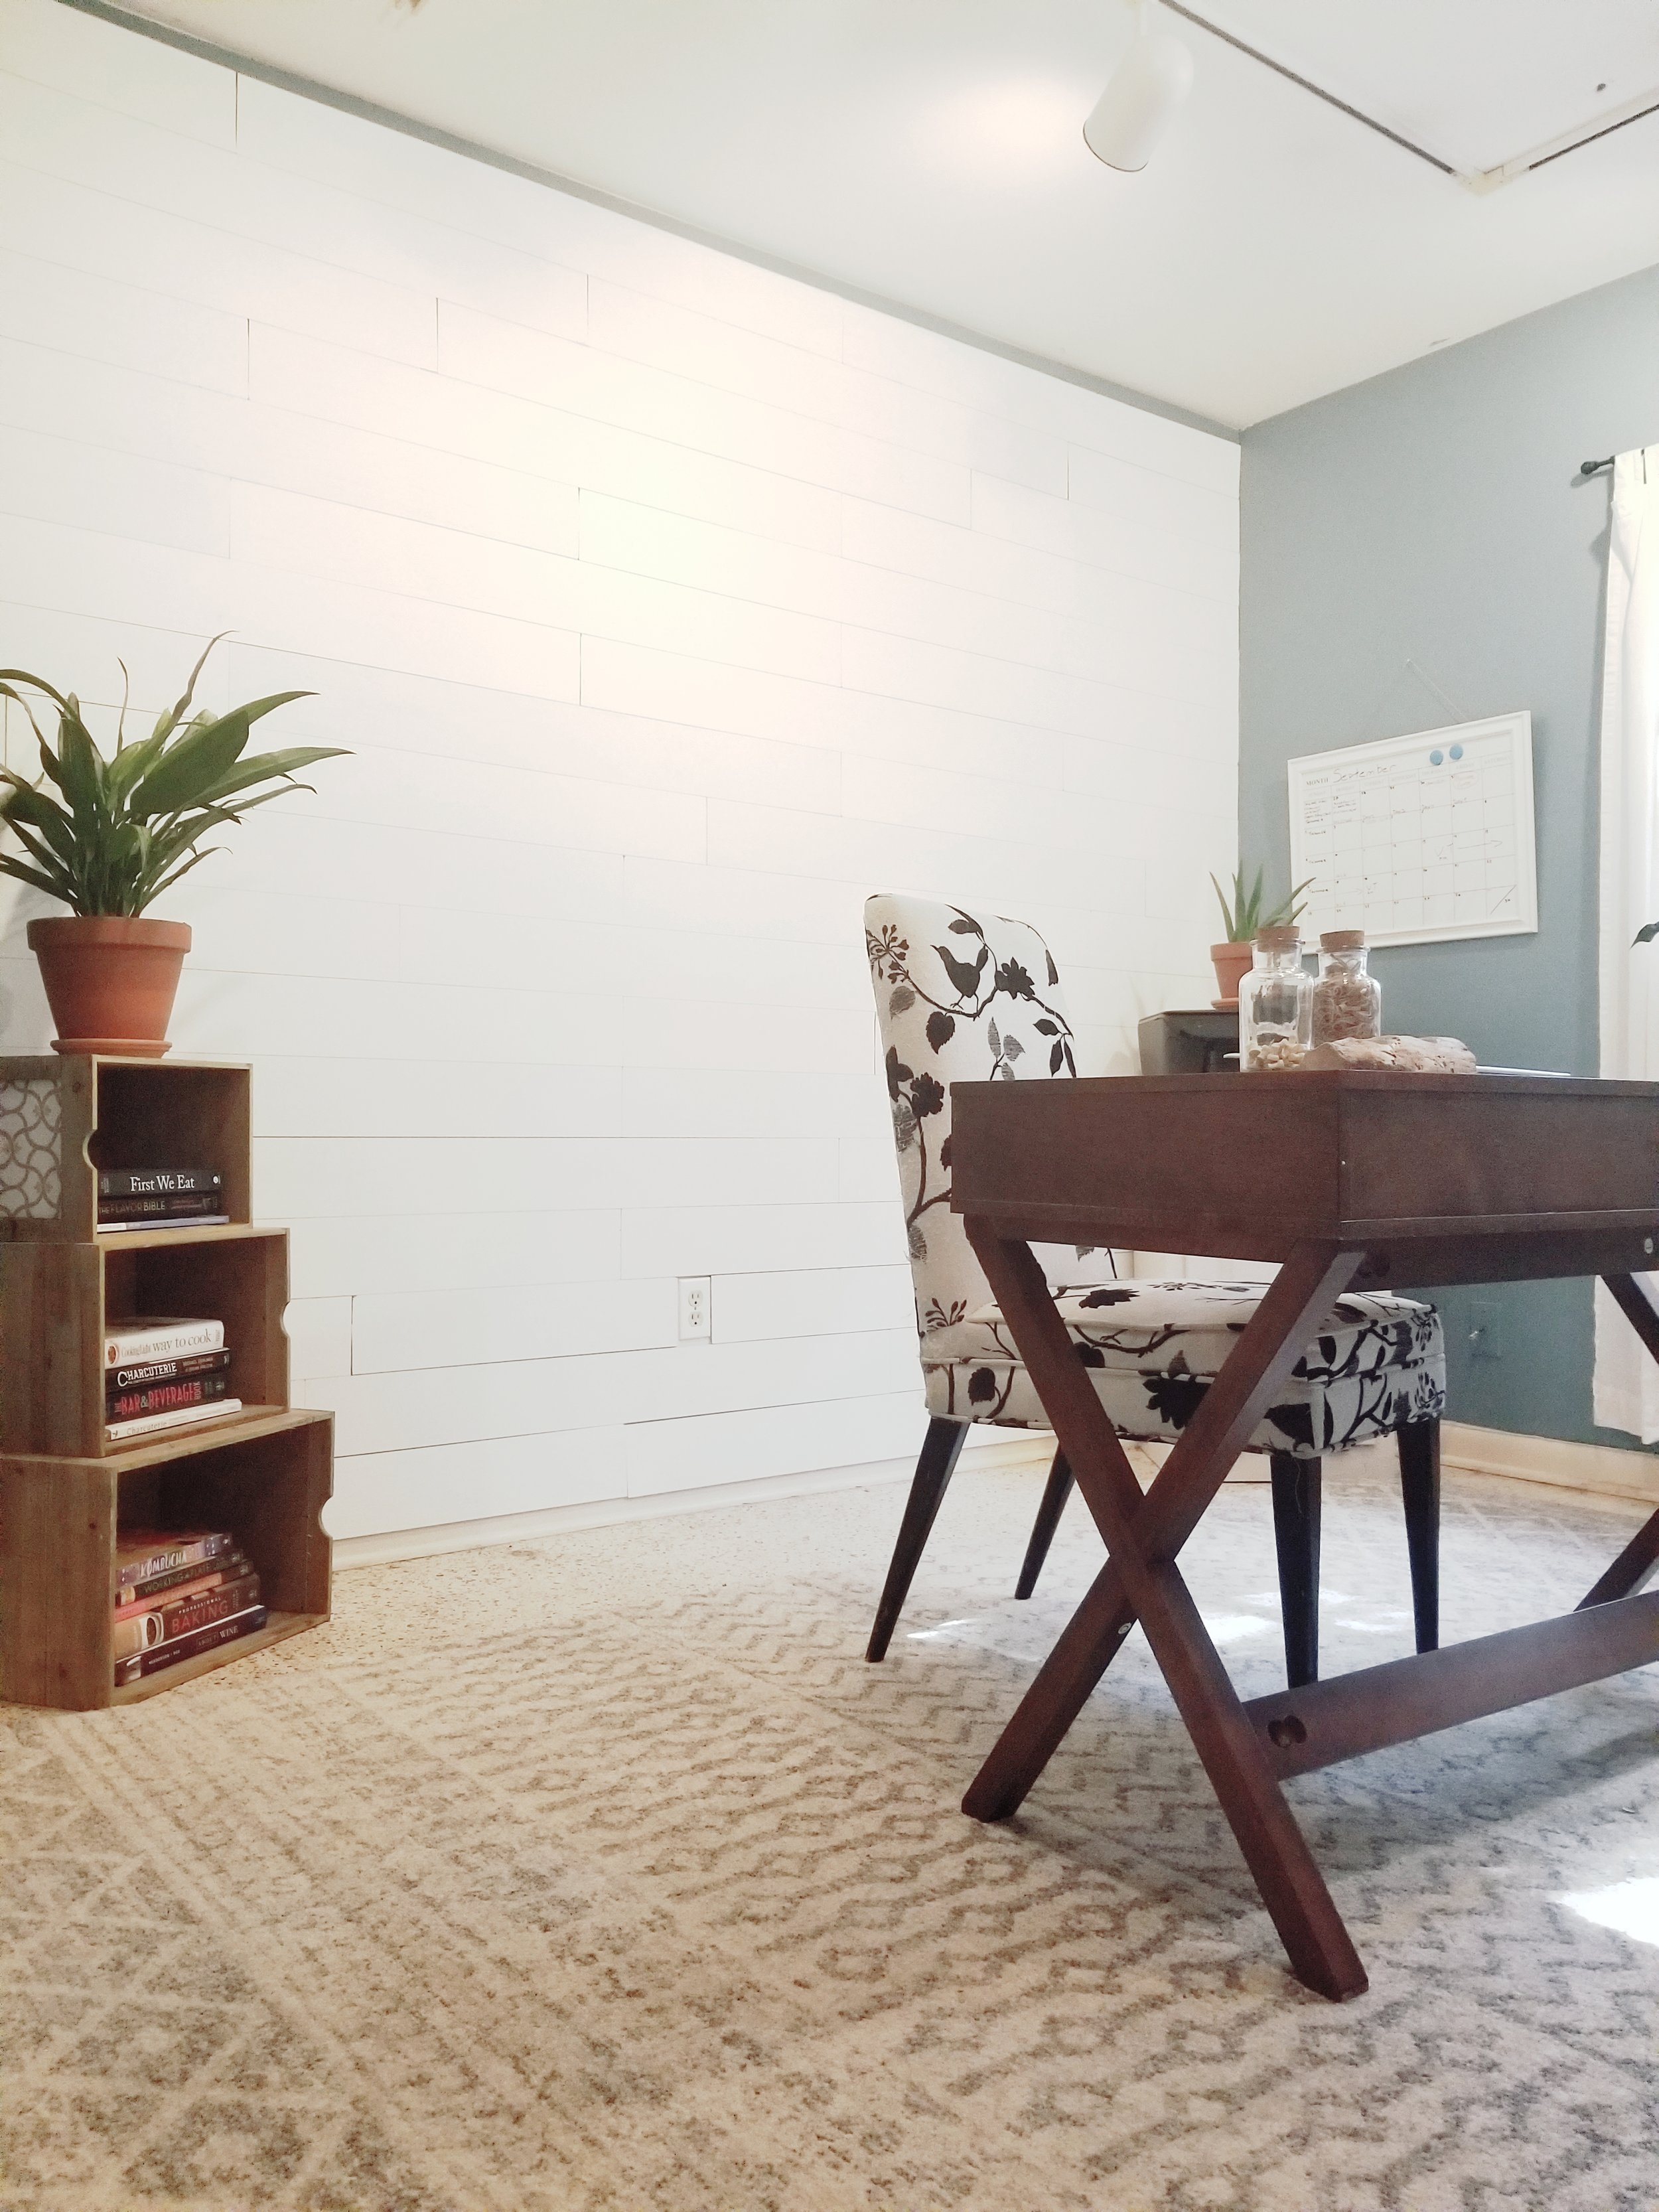 Final office with wallplanks- shiplap walls diy peel and stick walls